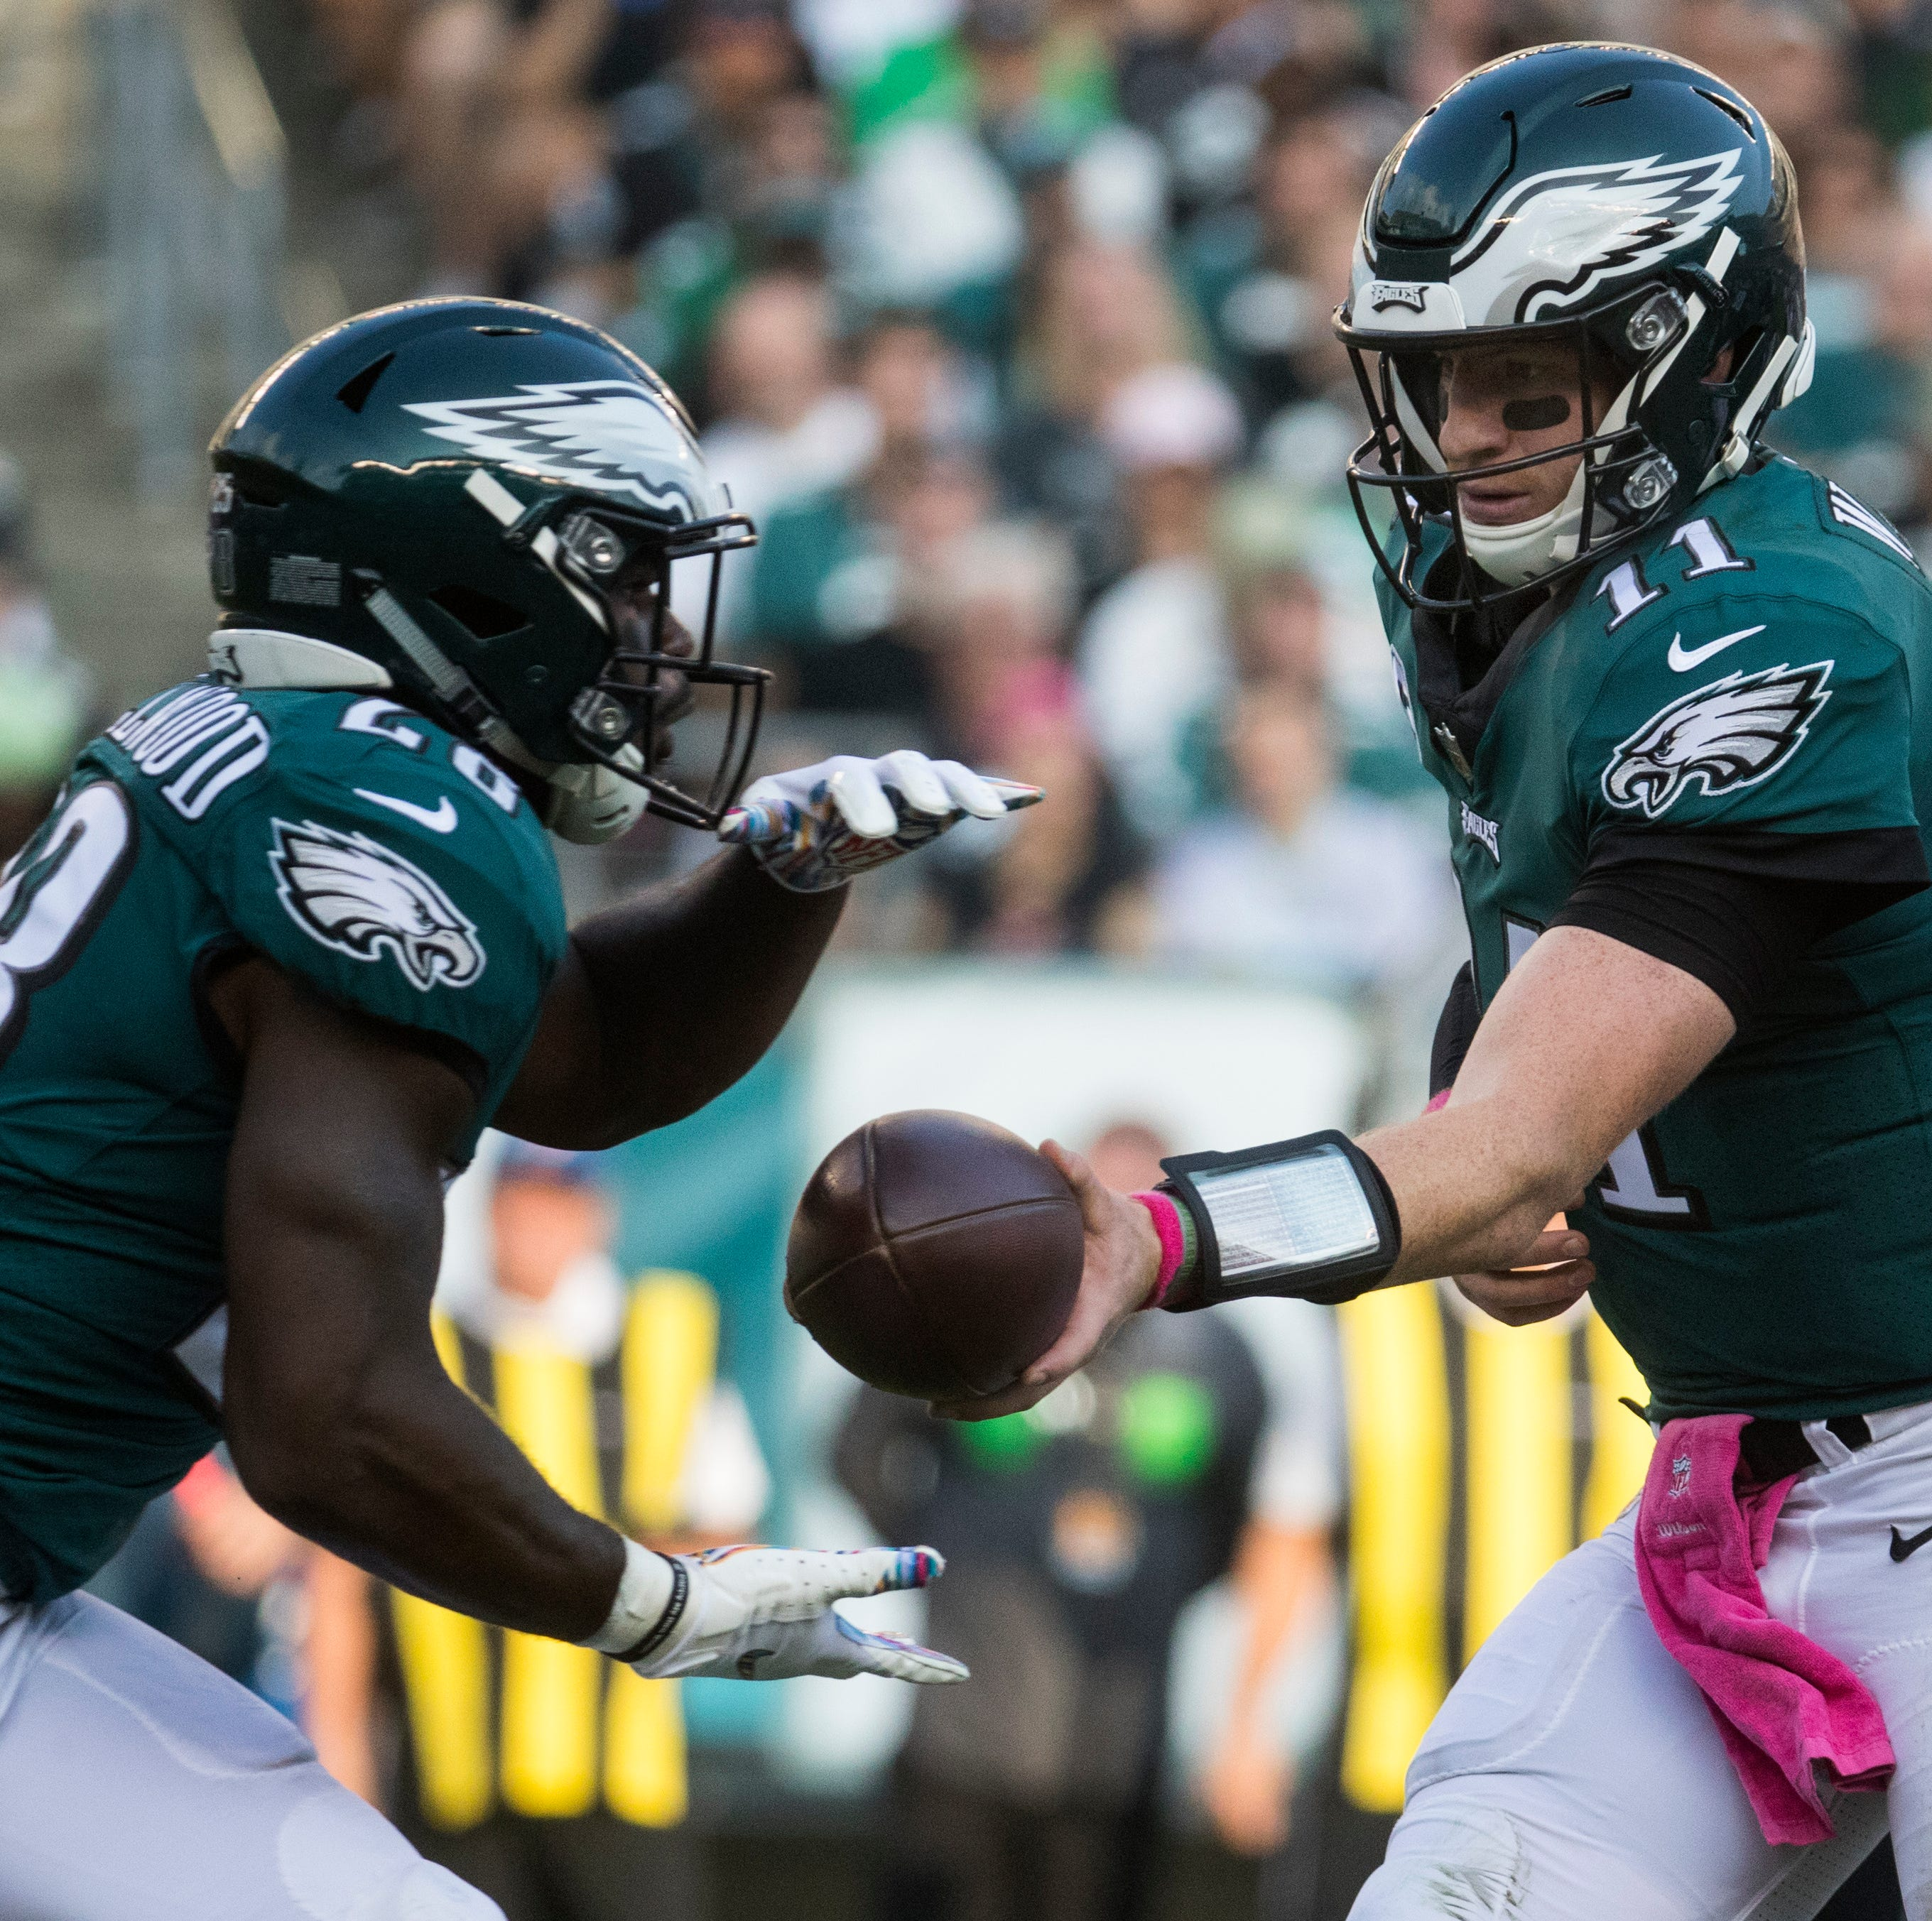 LIVE: Philadelphia Eagles vs. Carolina Panthers